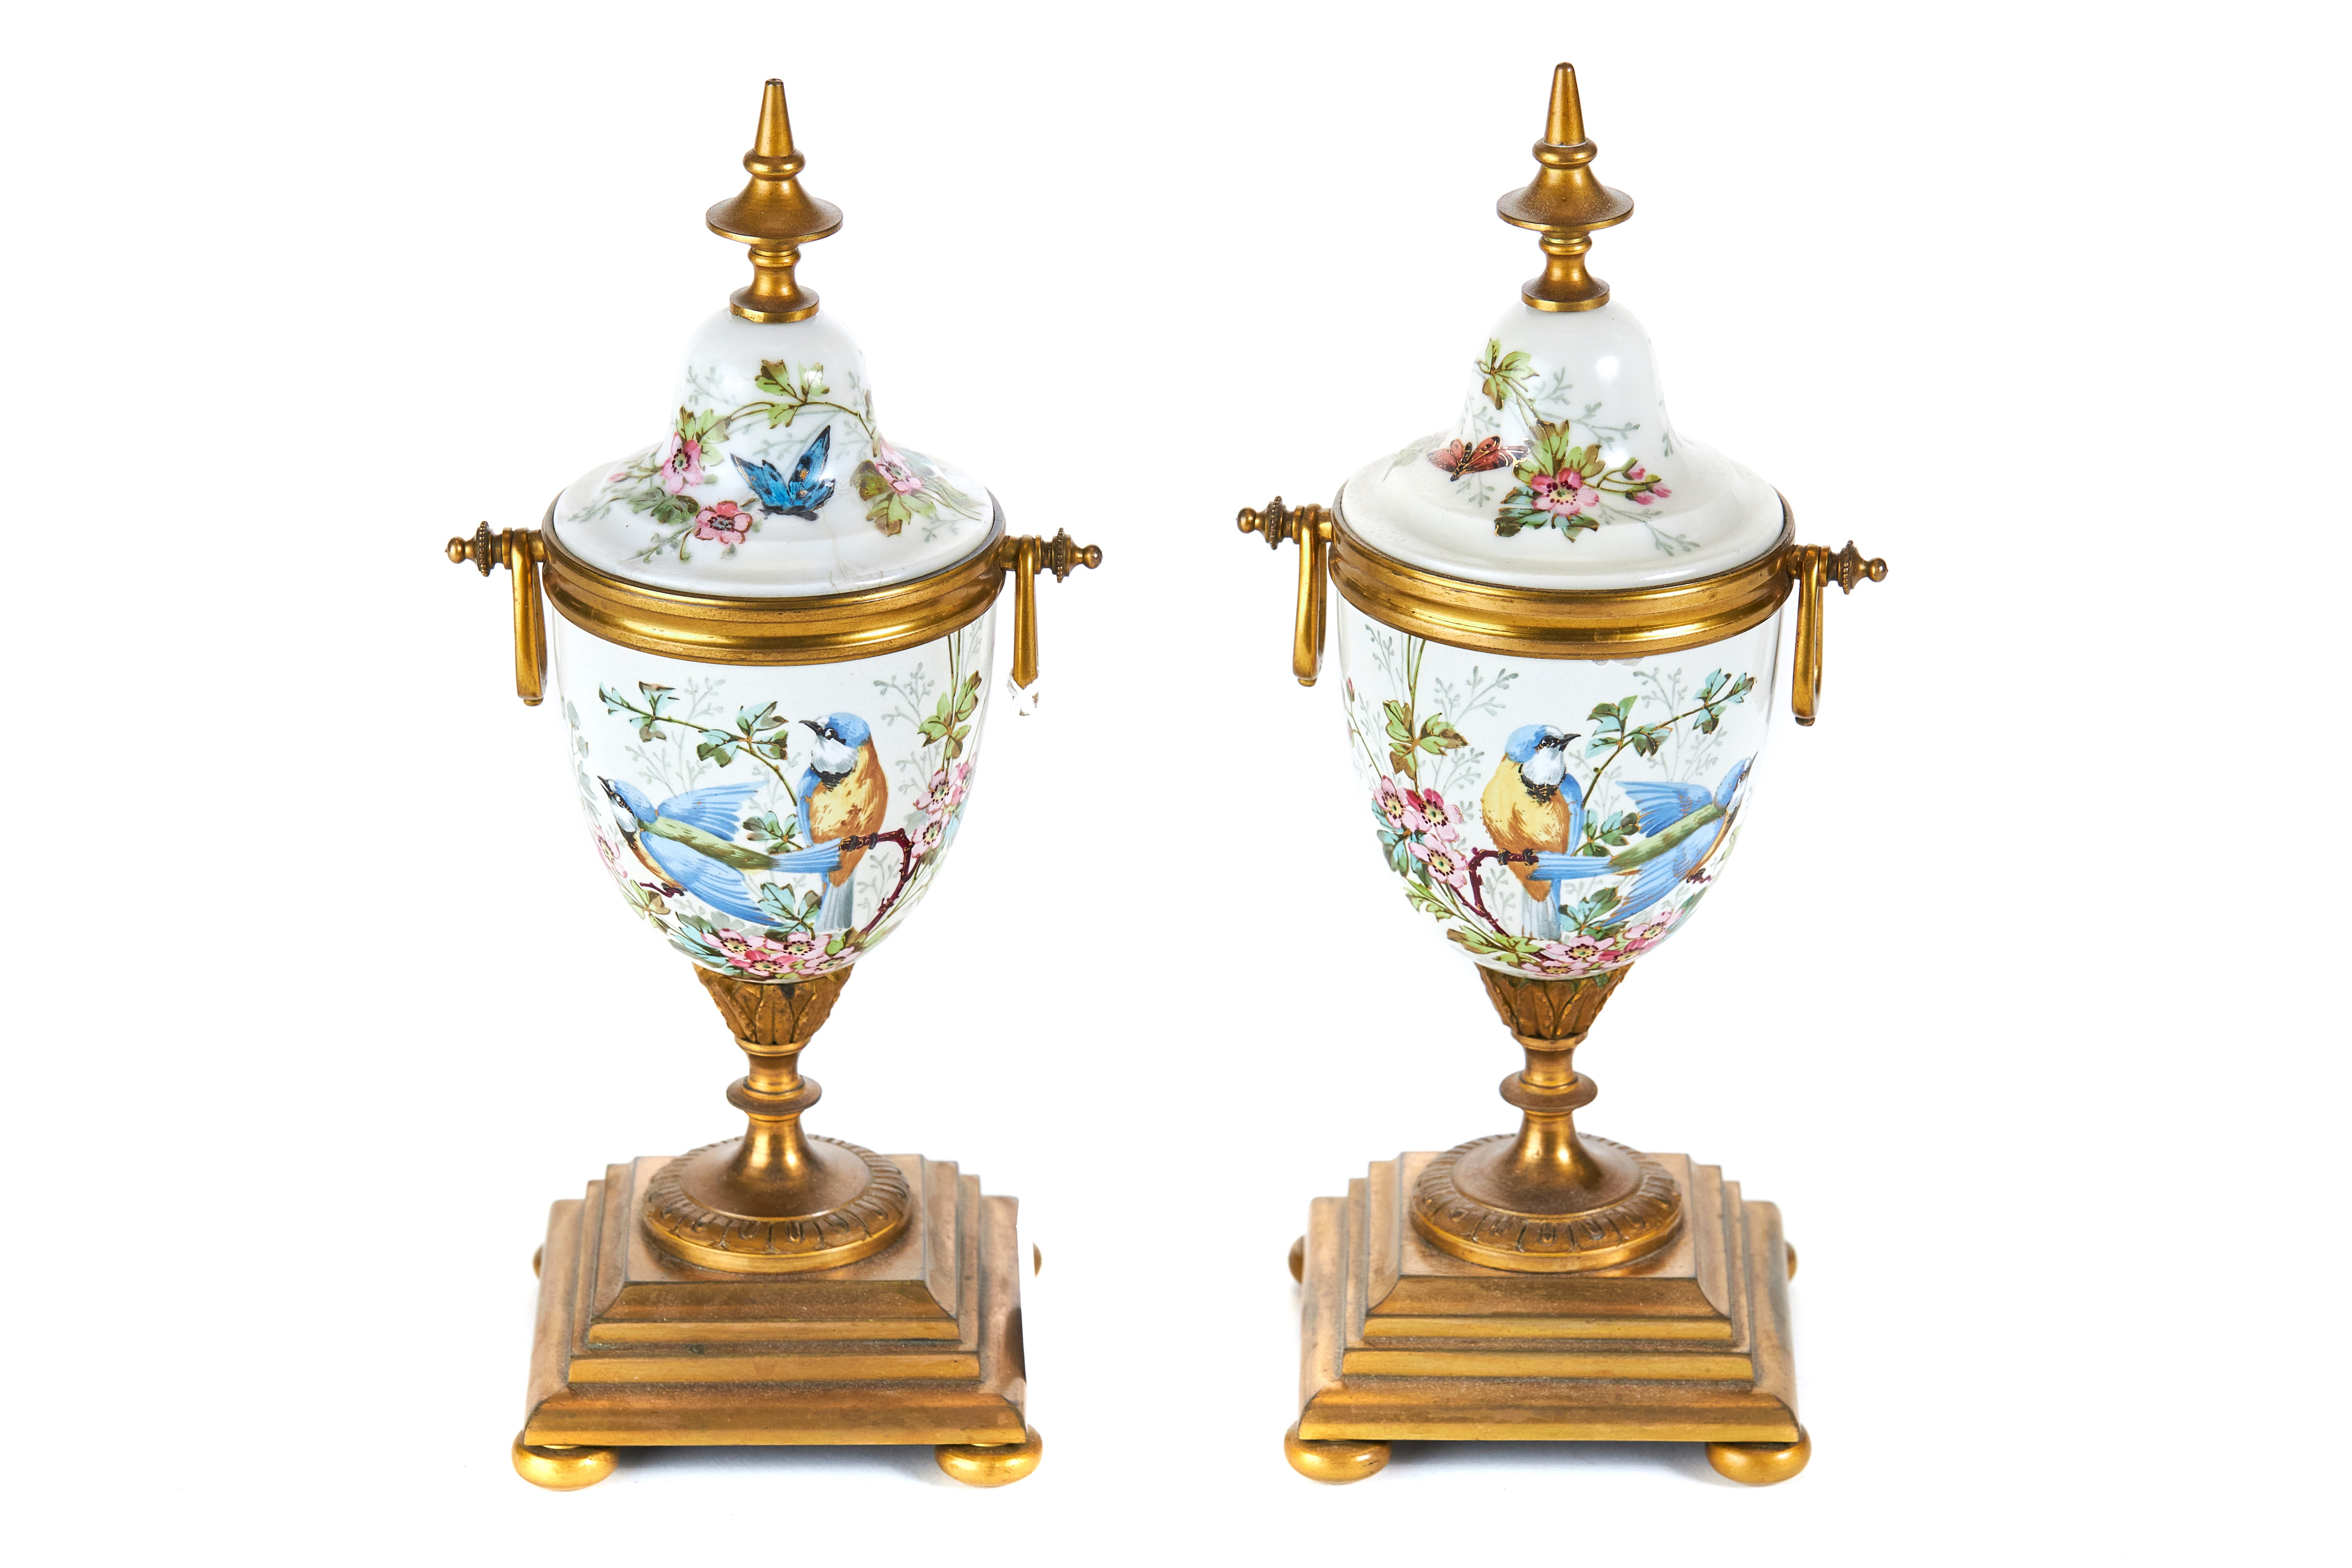 Lot 31 - A PAIR OF LATE 19TH CENTURY CONTINENTAL PORCELAIN AND ORMOLU MOUNTED URNS polychrome decorated with